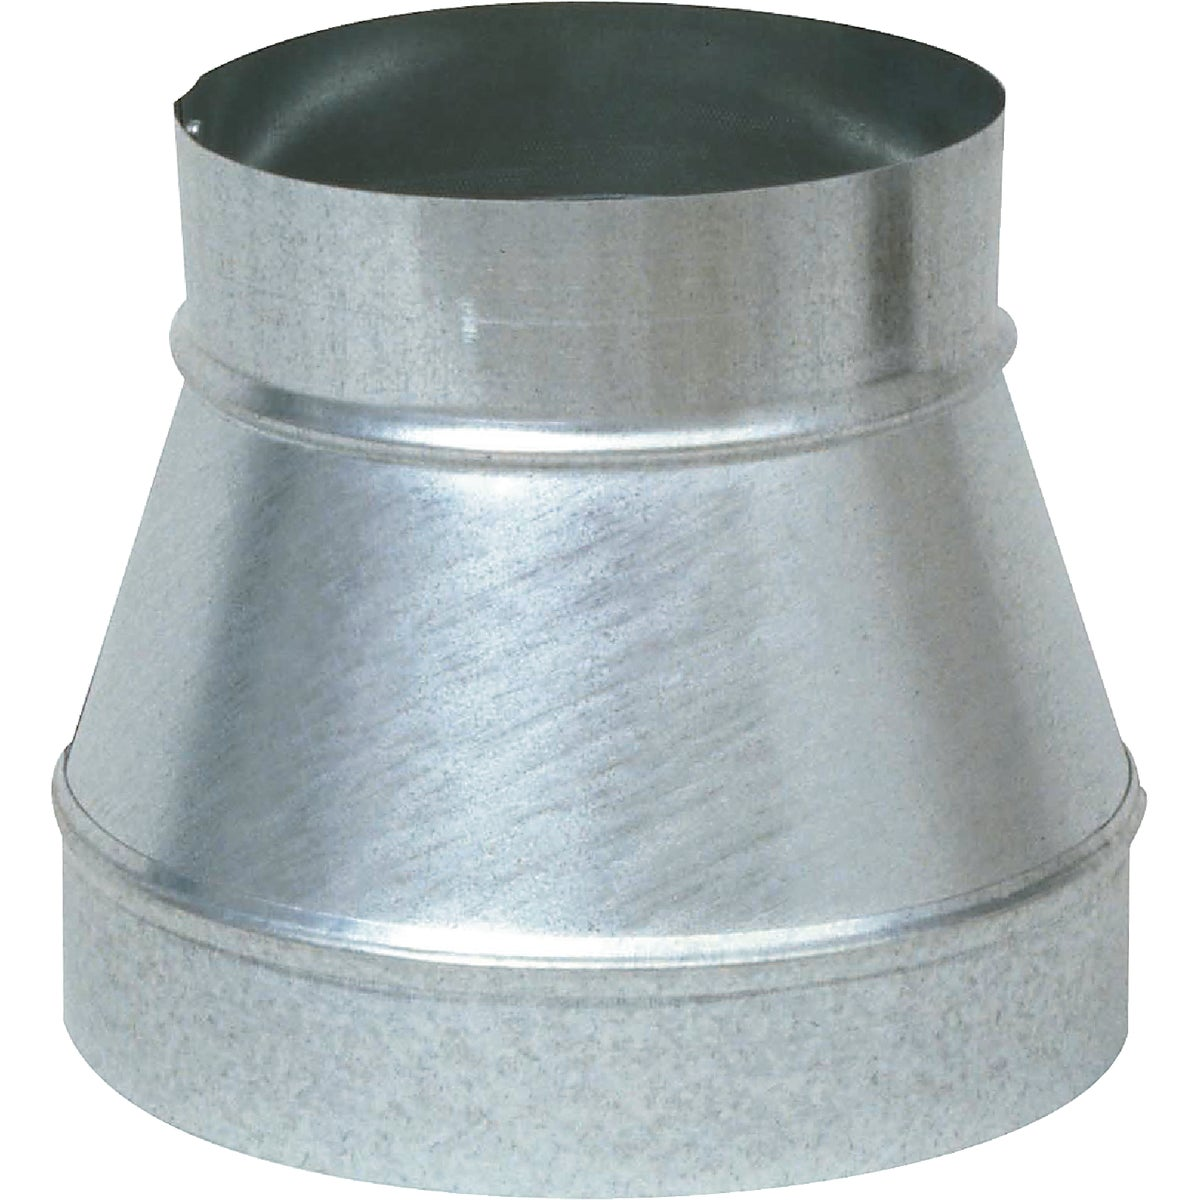 4-3 INCREASER/REDUCER - GV0779-A by Imperial Mfg Group